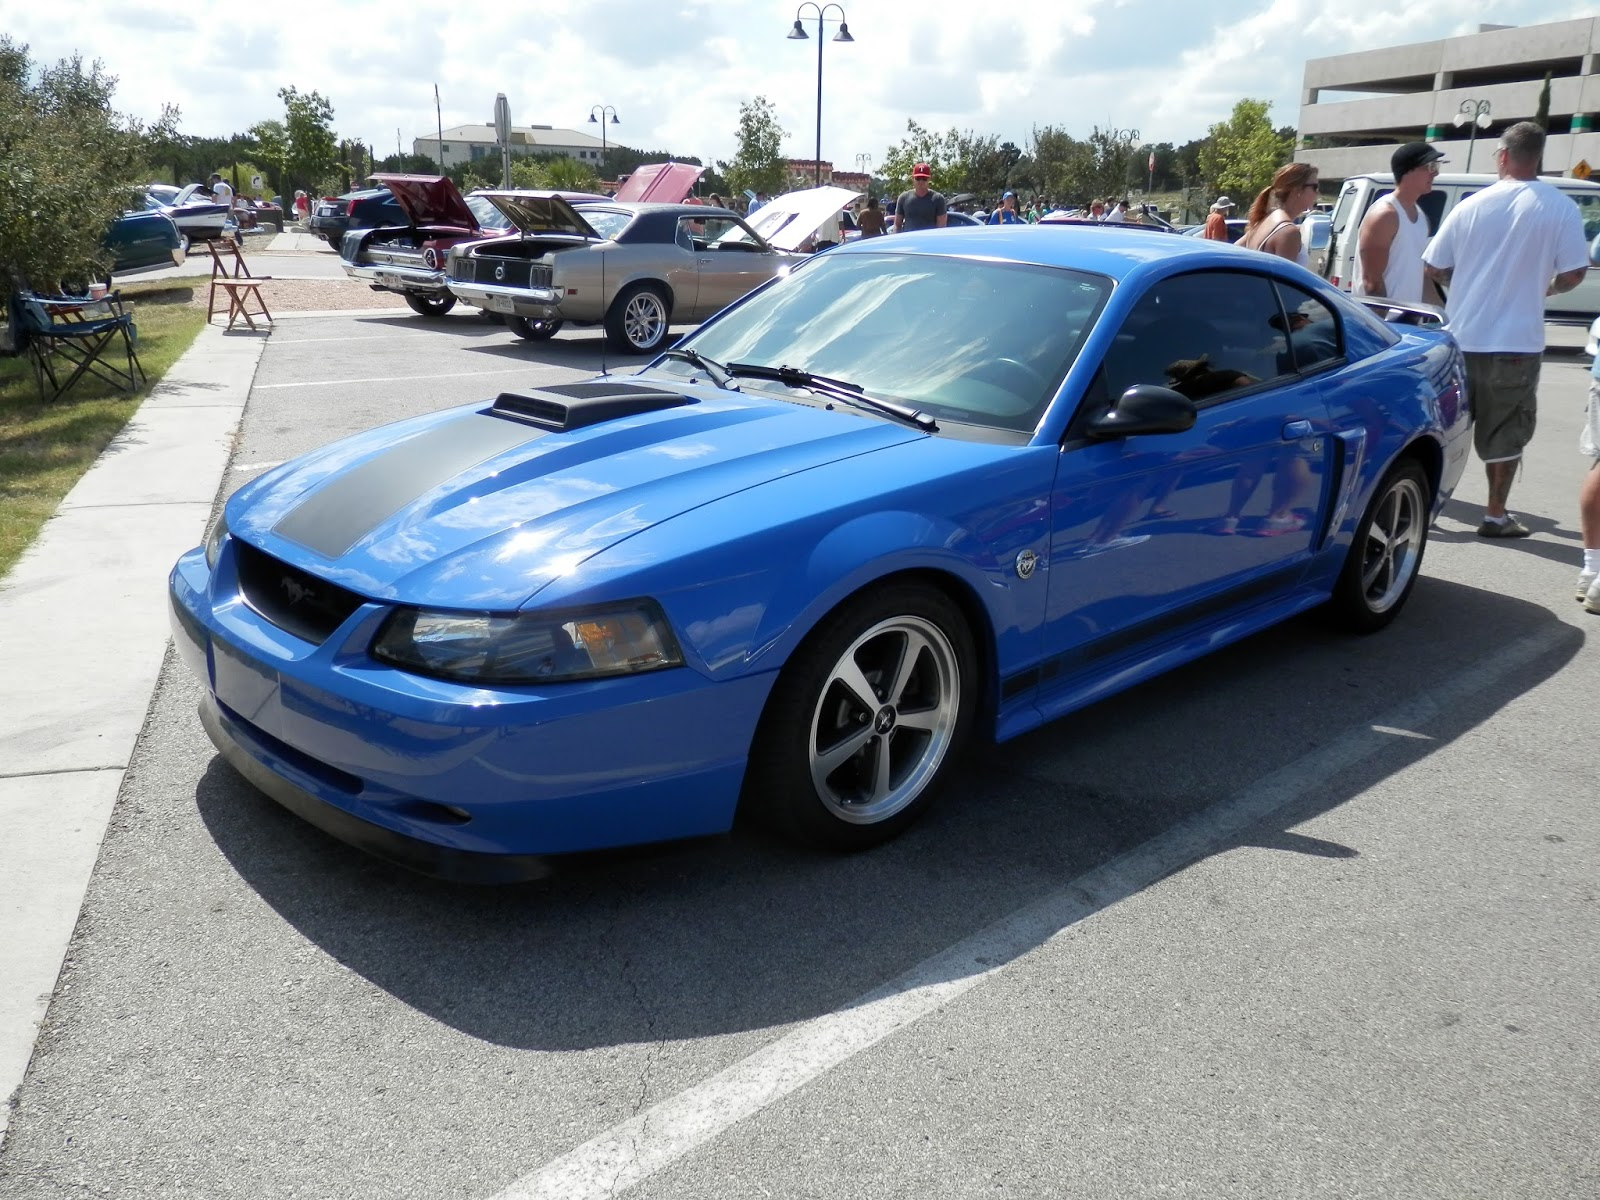 Shifting gears random car wednesday 2004 ford mustang mach 1